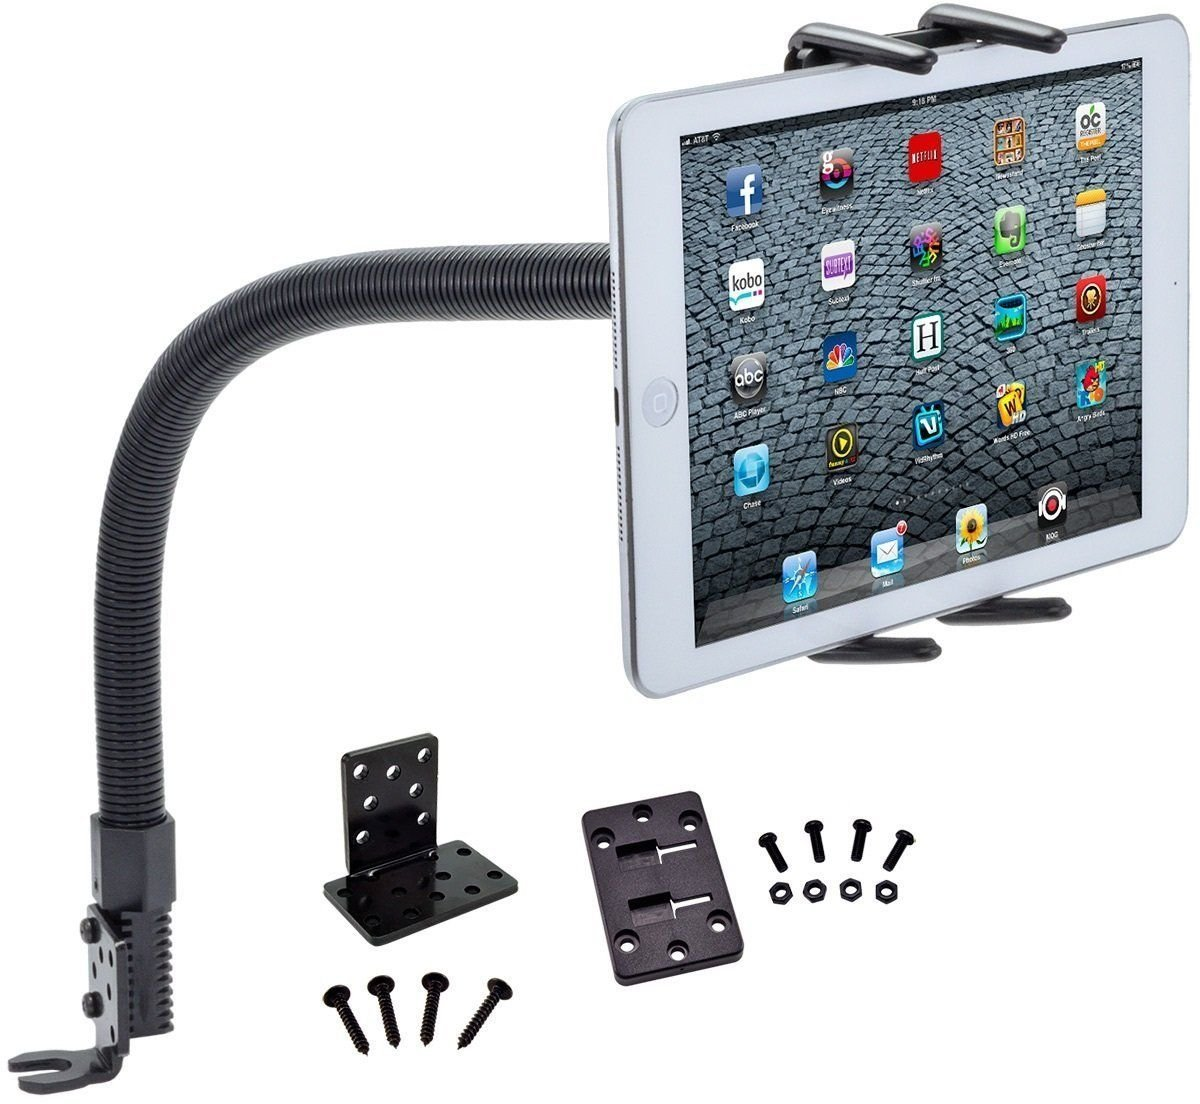 "Tablet Car Mount, Robust Tablet Car Holder Gooseneck Flex Truck Mount for Apple iPad Pro 12.9 11 10.5 9.7 iPad Air iPad Mini Tablet (All 7-13"") w/Anti-Vibration Swivel Cradle (with or Without case)"